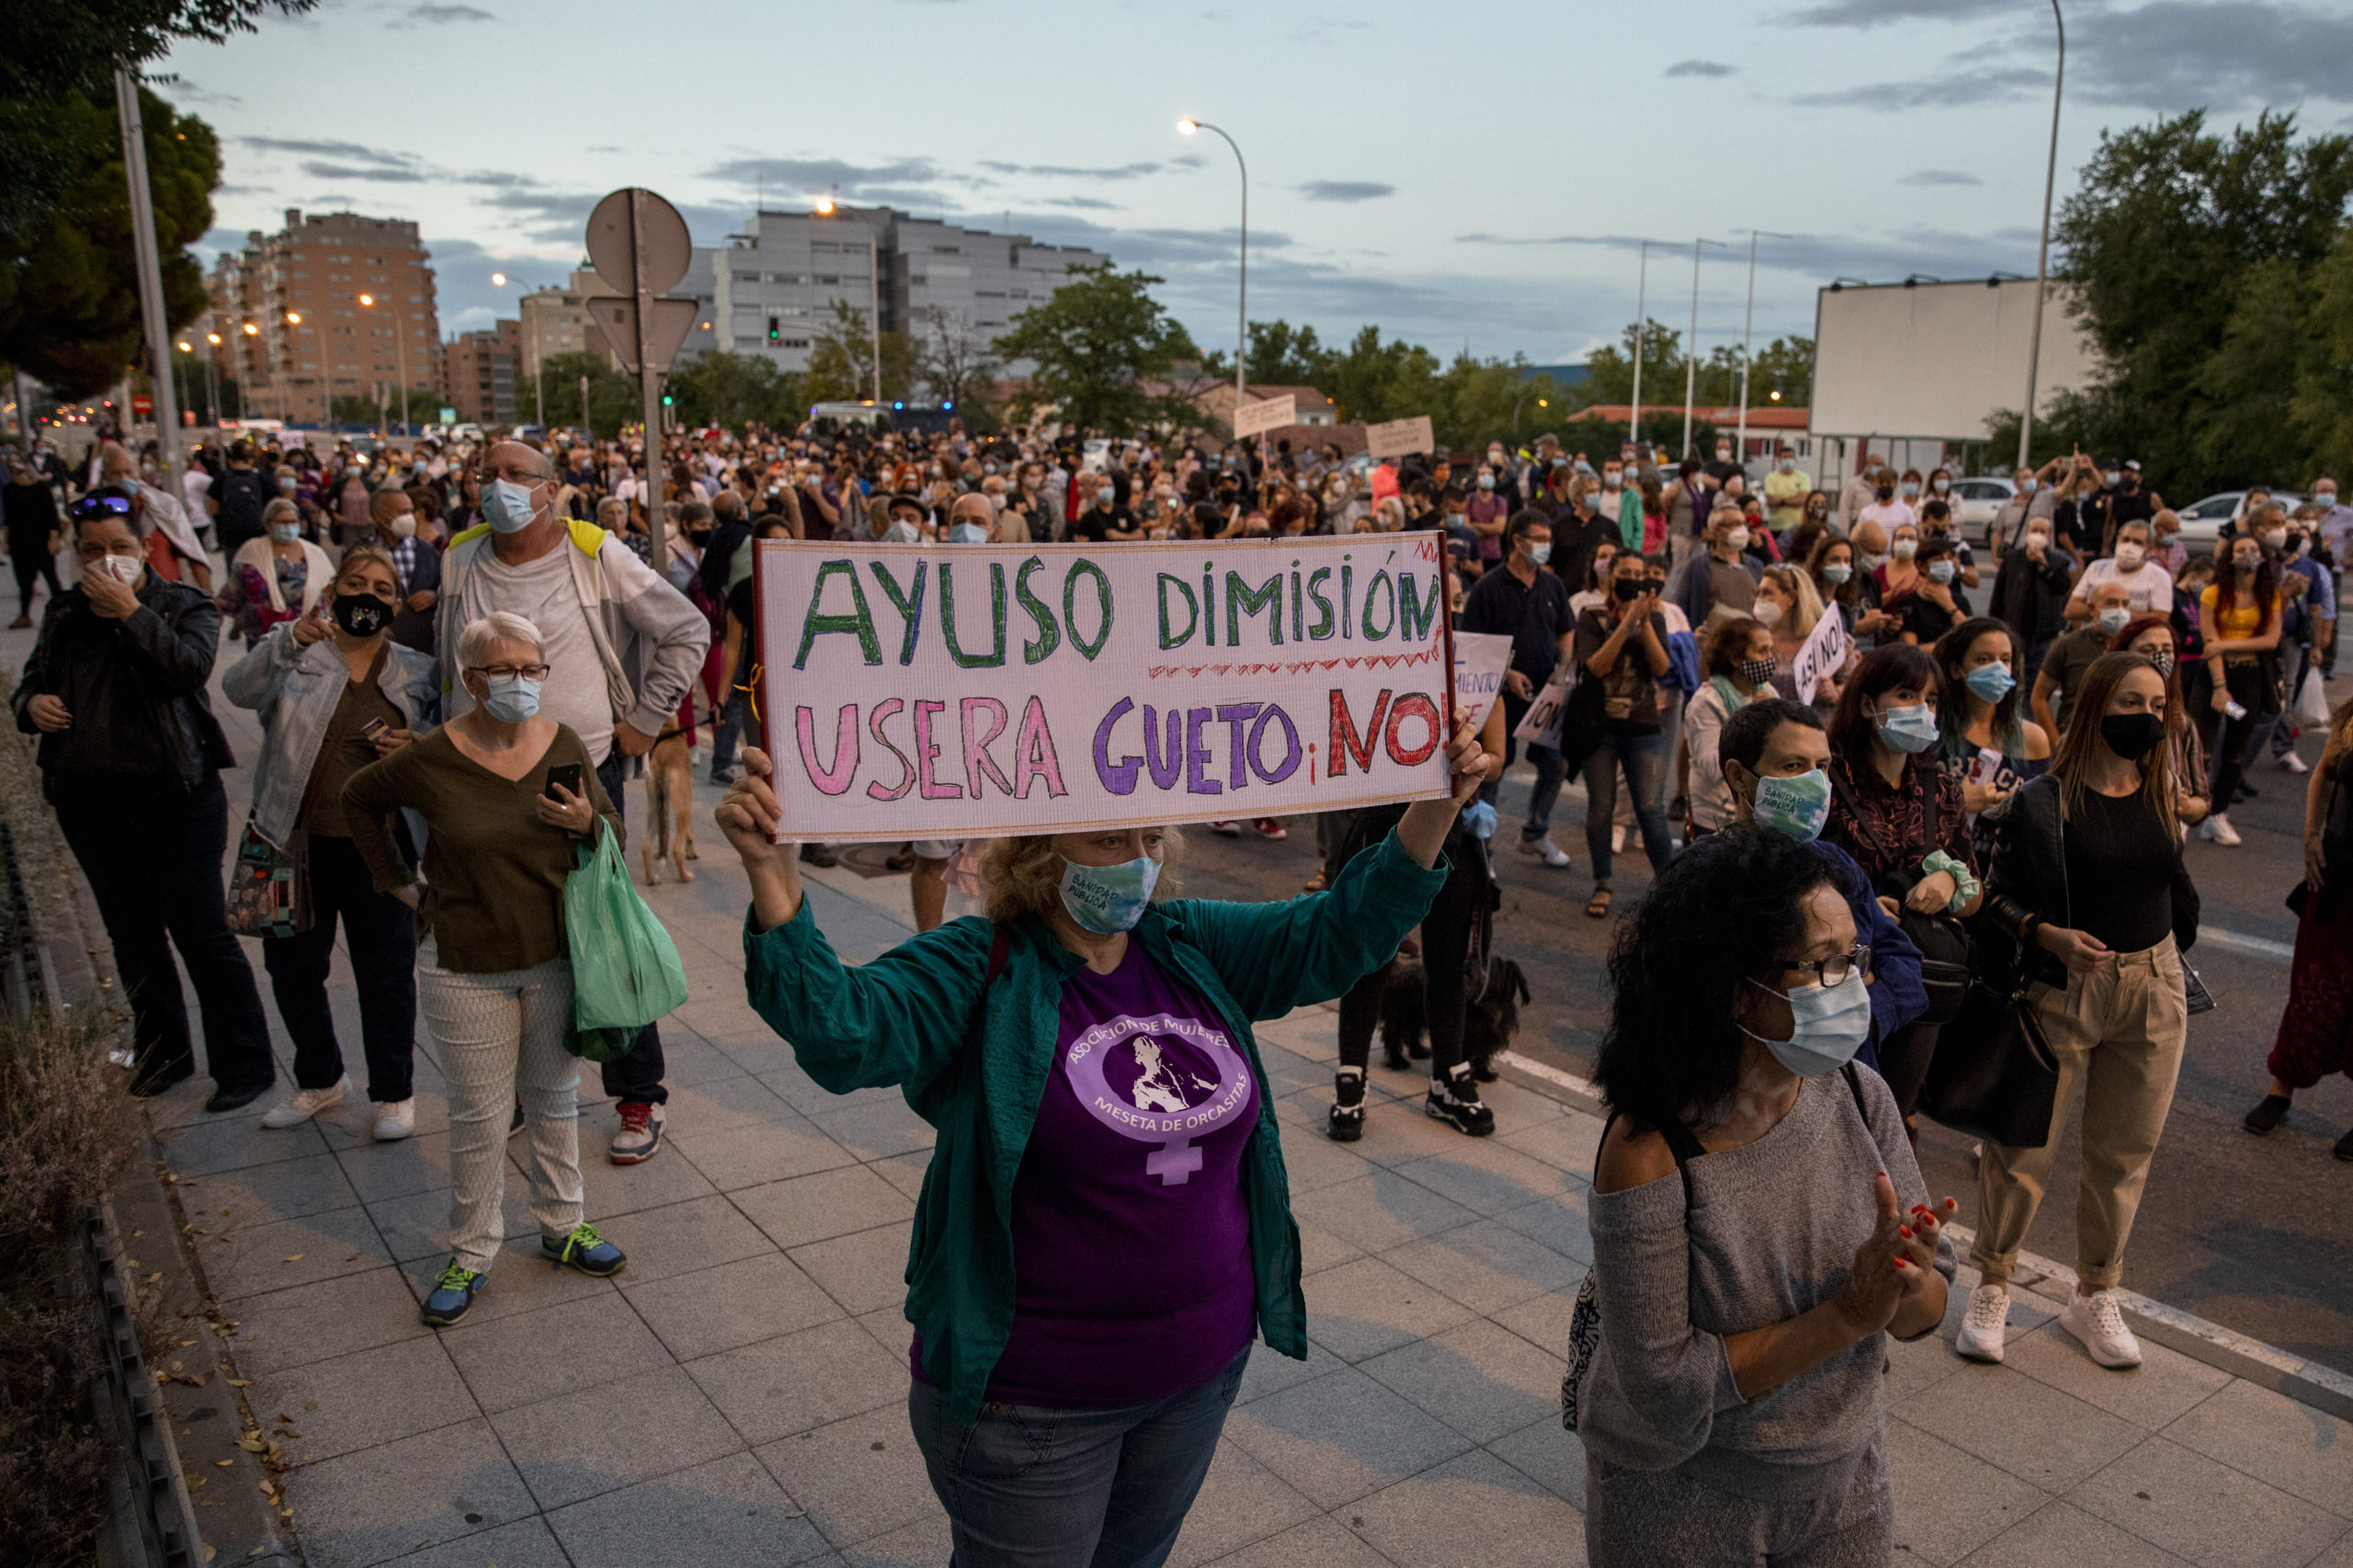 A protester wearing protective masks holds a placard reading 'Ayuso resignation. Usera is not a ghetto' amid other protesters during a demonstration, in the Usera neighborhood, against the measures imposed by the Madrid regional government on areas with the most COVID-19 cases on September 20, 2020 in Madrid, Spain. Spain is the midst of a second wave of COVID-19, reporting more than 122,000 new cases in the last two weeks. More than a third are in the Madrid region. (Photo by Pablo Blazquez Dominguez/Getty Images)